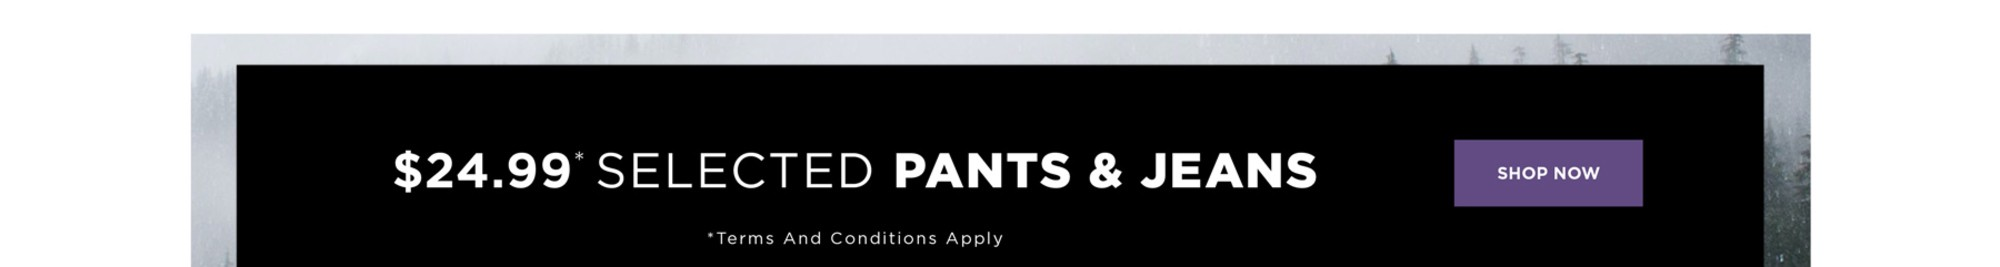 $24.99* SELCTED PANTS & JEANS - *See Terms & Conditions For Full Details, Prices As Marked - SHOP NOW